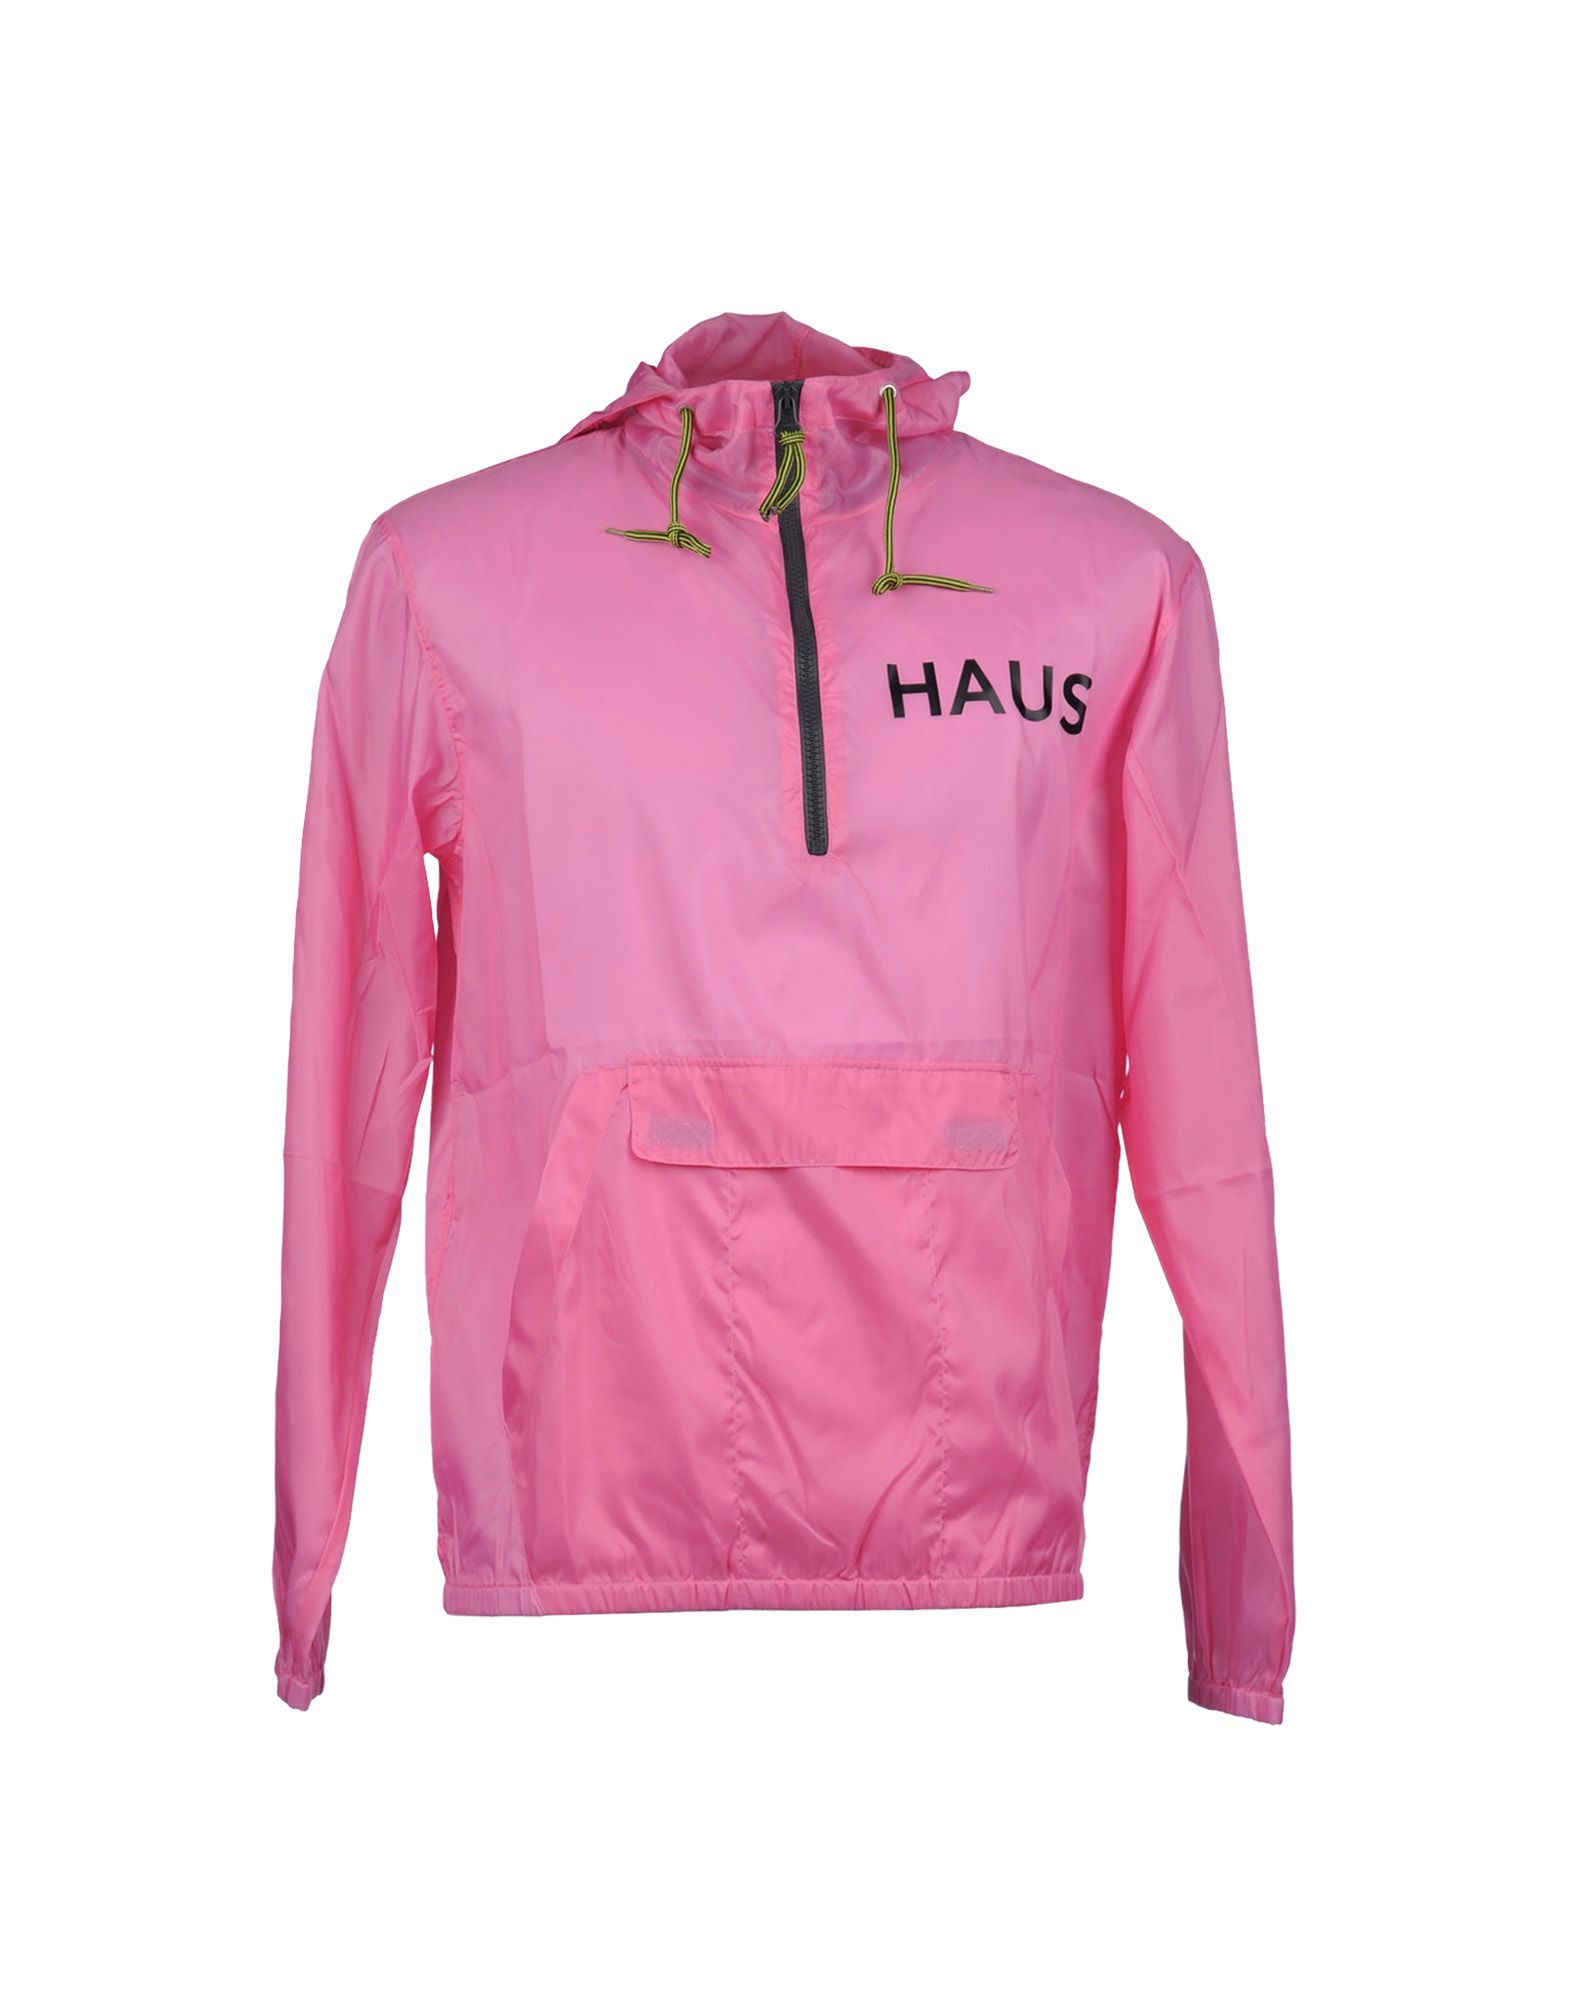 Lyst Haus By Golden Goose Deluxe Brand Jacket In Purple